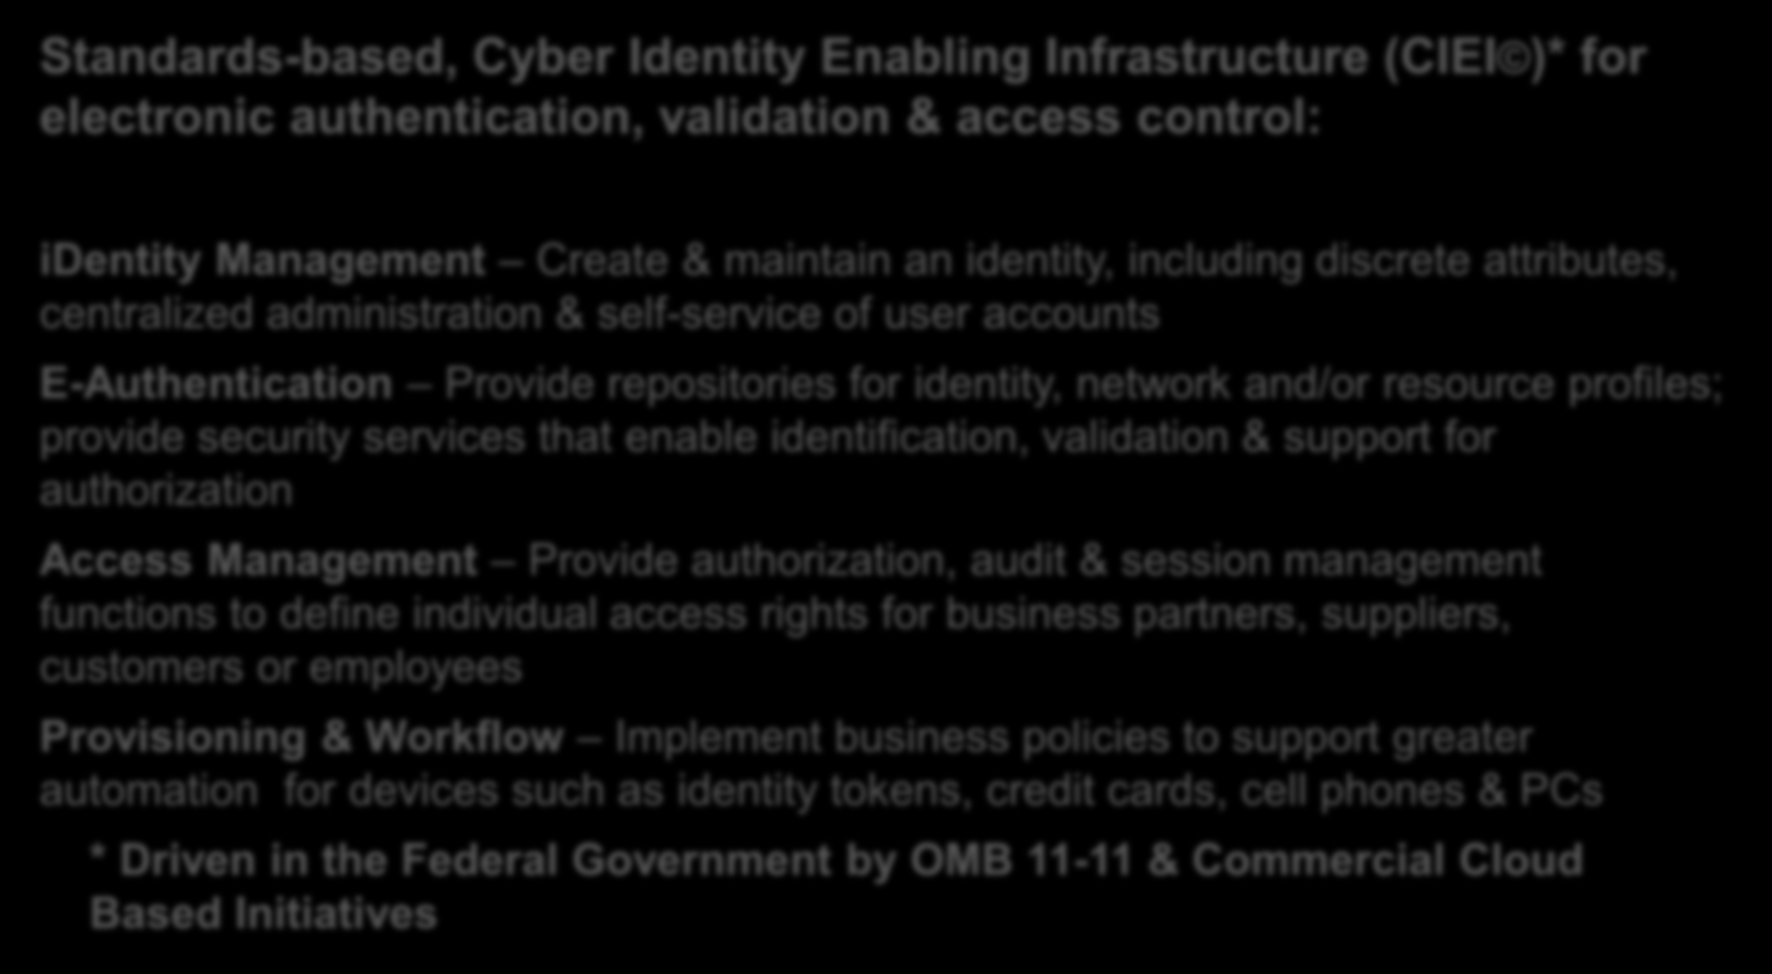 CyberApproach Standards-based, Cyber Identity Enabling Infrastructure (CIEI )* for electronic authentication, validation & access control: identity Management Create & maintain an identity, including